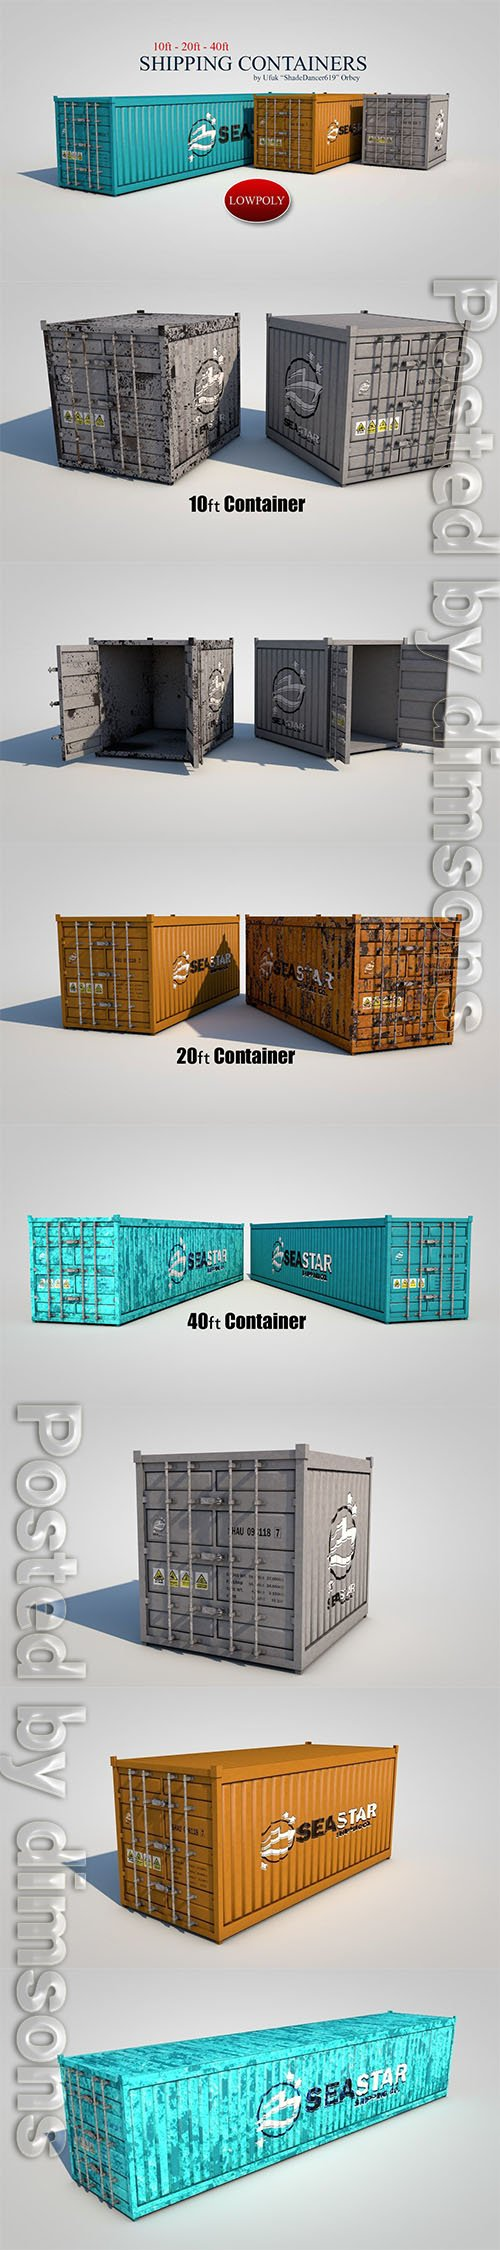 Shipping Containers Low-poly 3D model